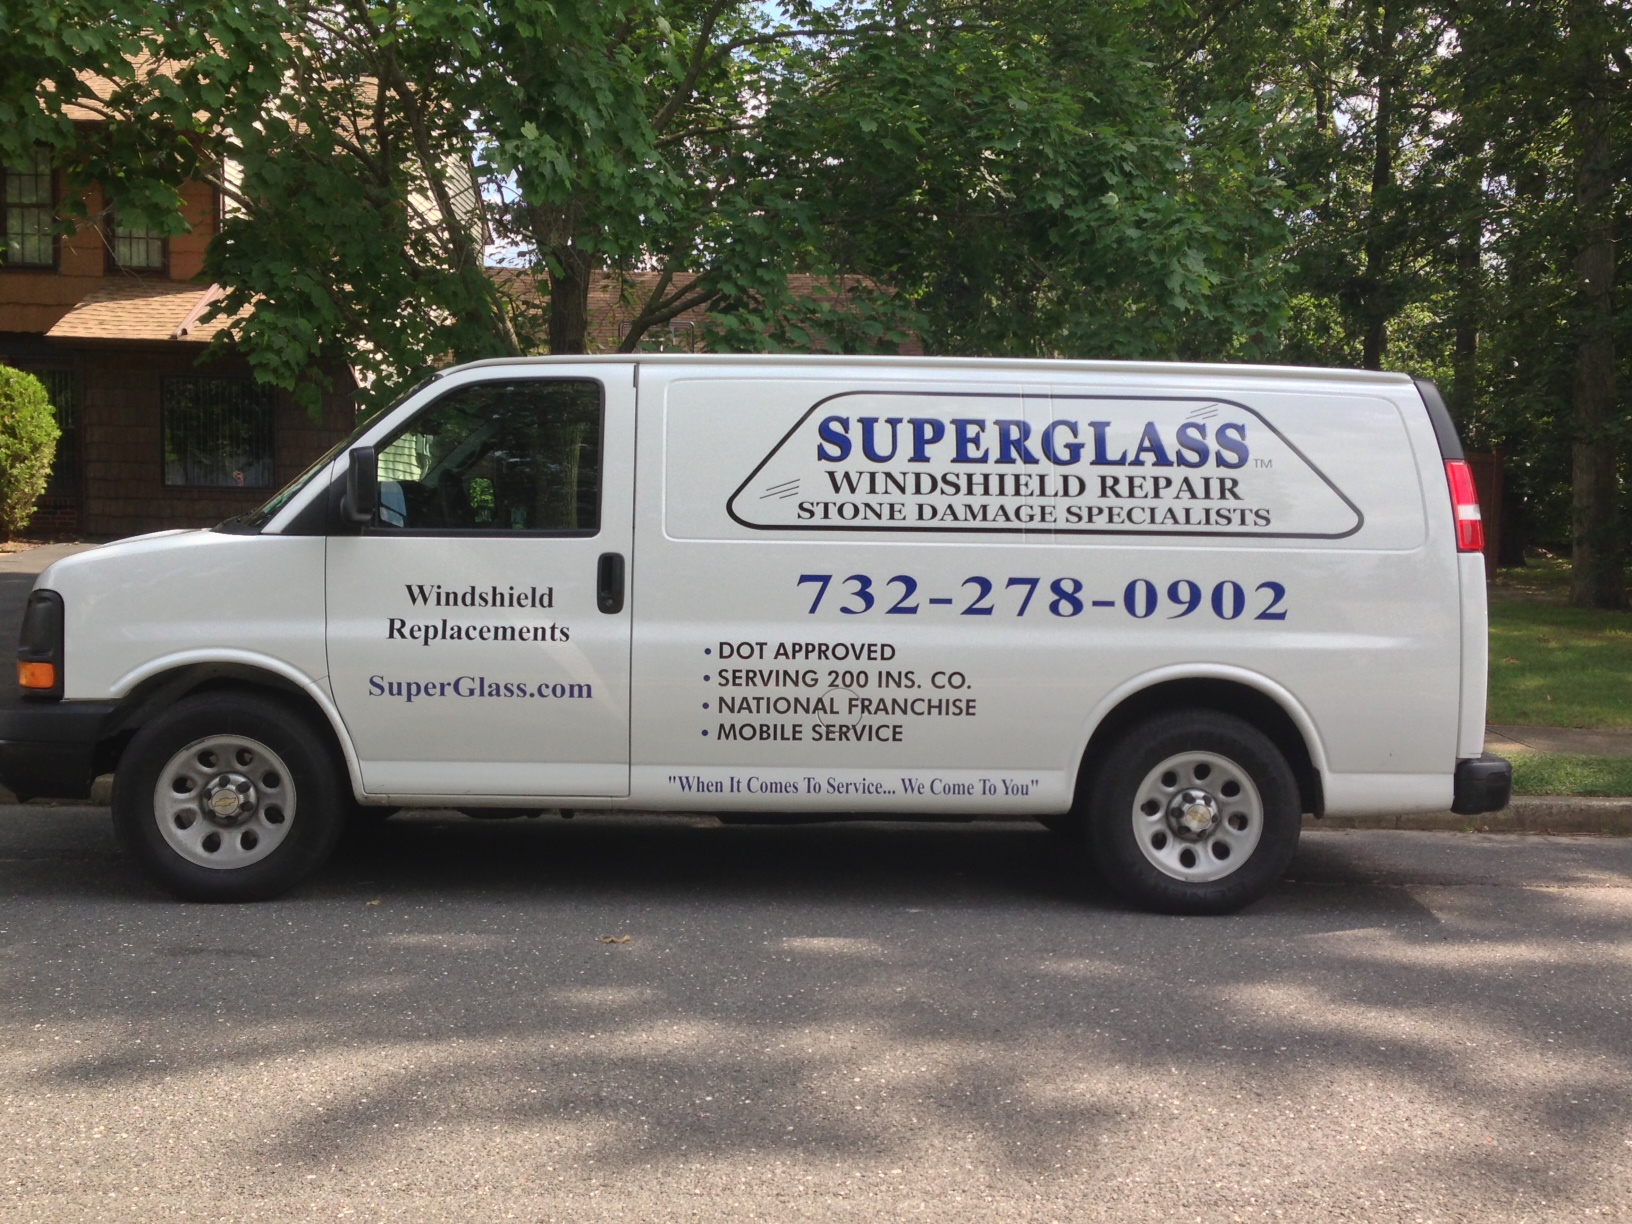 Superglass Windshield Repair - ad image